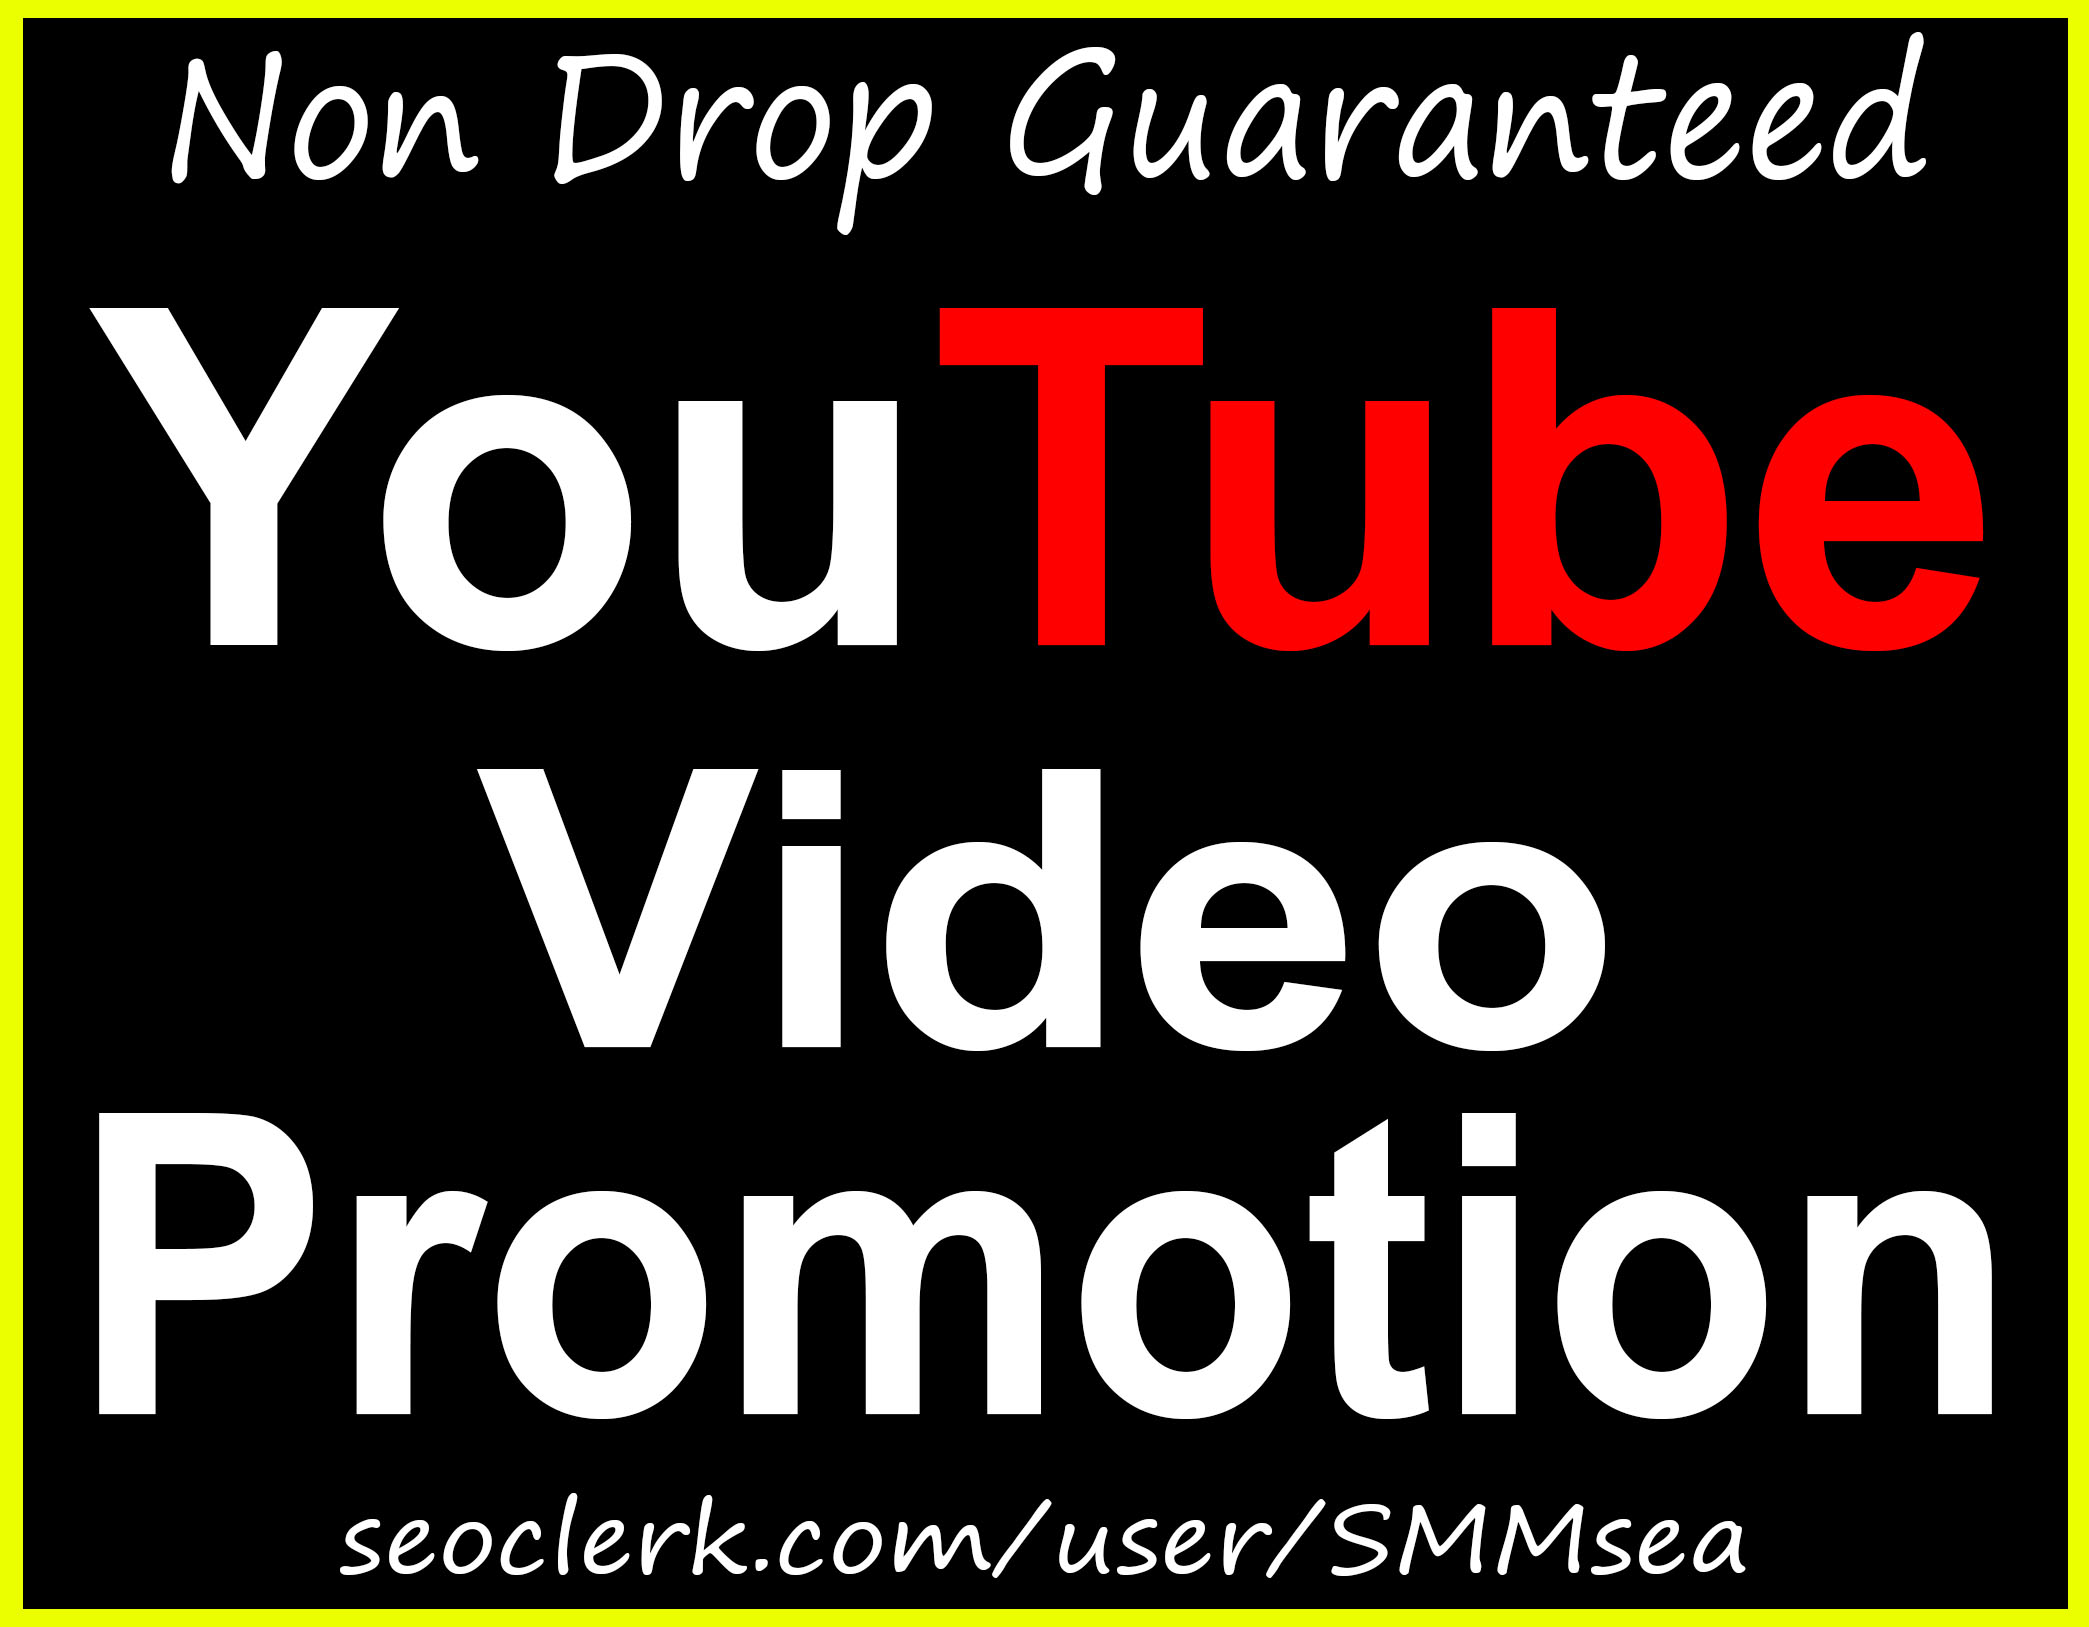 YouTube Video Promotion HQ + Good for Ranking